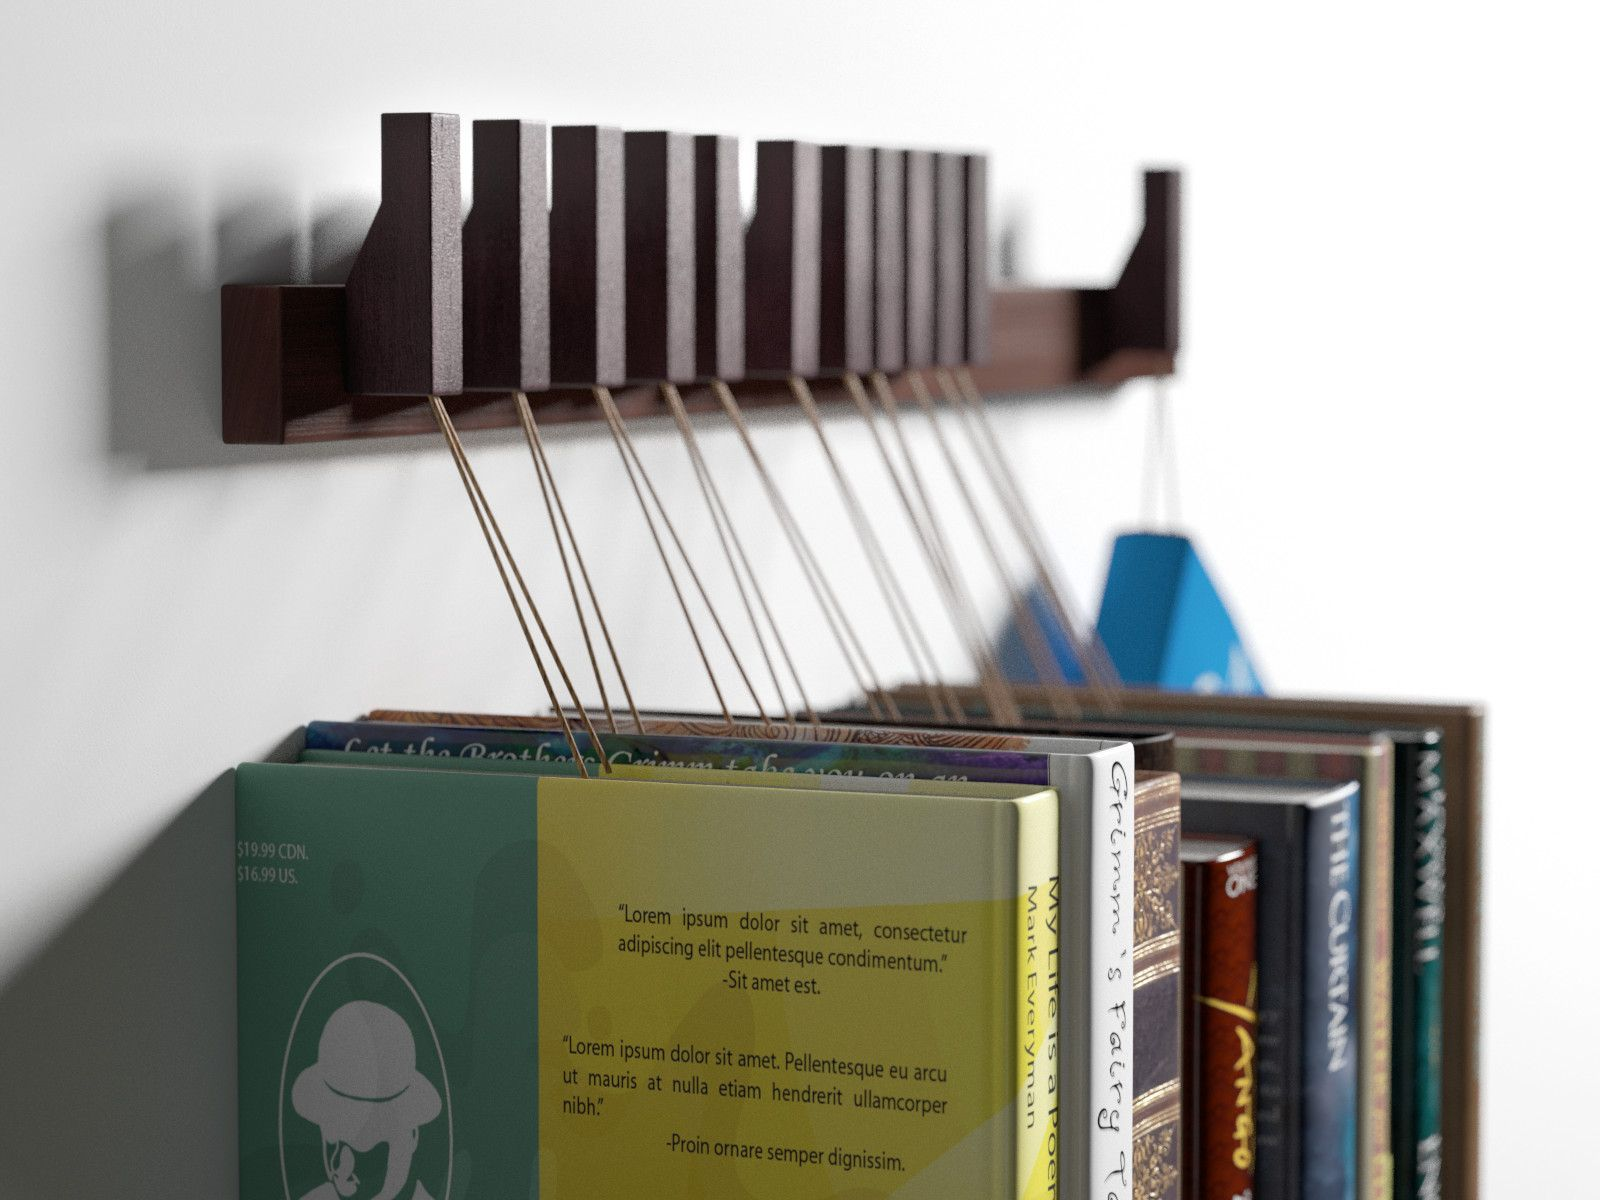 cabinets display product oak sideboard wave en h by from architonic for holder ethnicraft shelf book rack